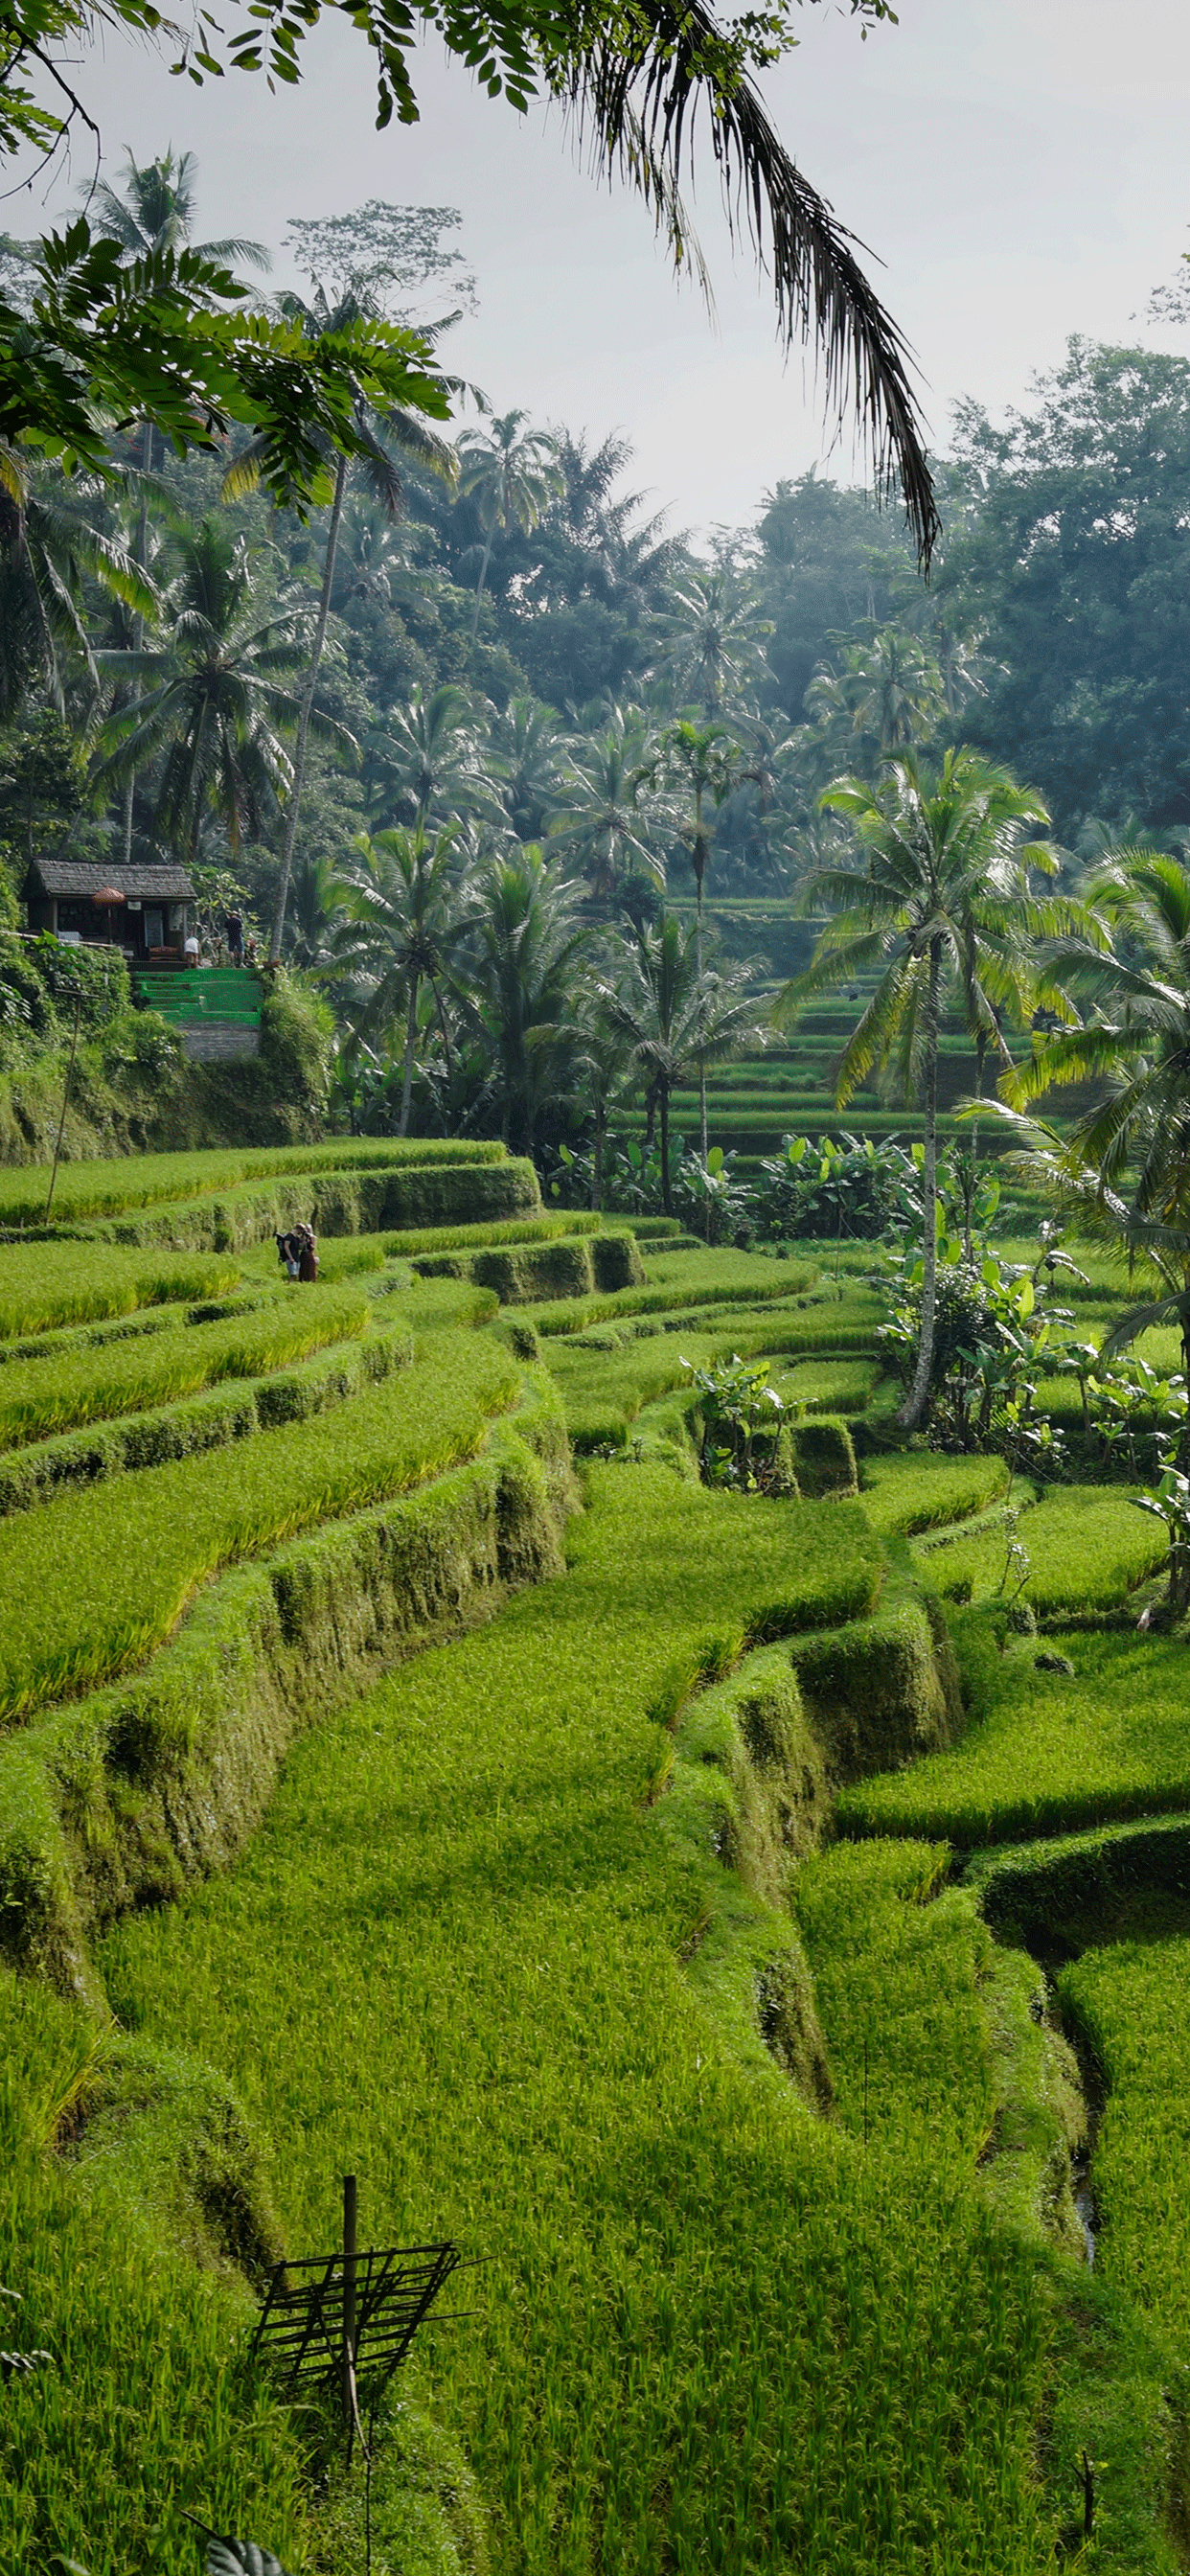 iPhone wallpapers ubud indonesia tegelalang. Fonds d'écran iPhone du 09/05/2019